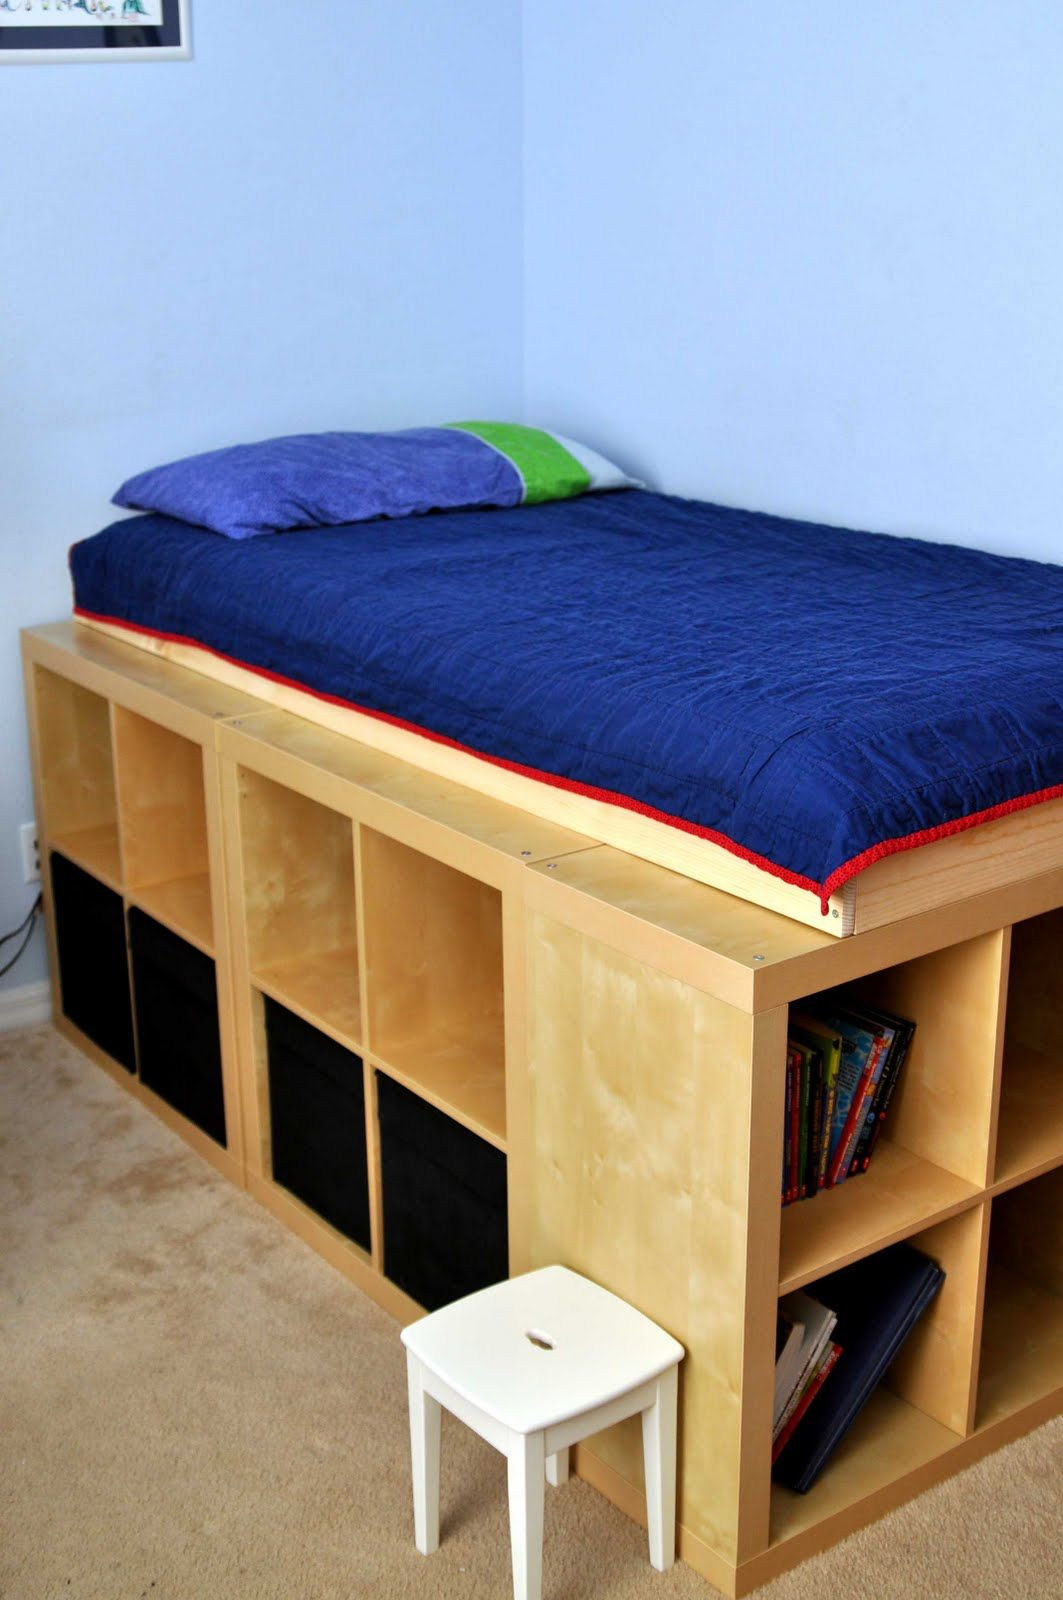 ikea expedit storage bed 7 for the home ikea bed bed bed storage rh pinterest com